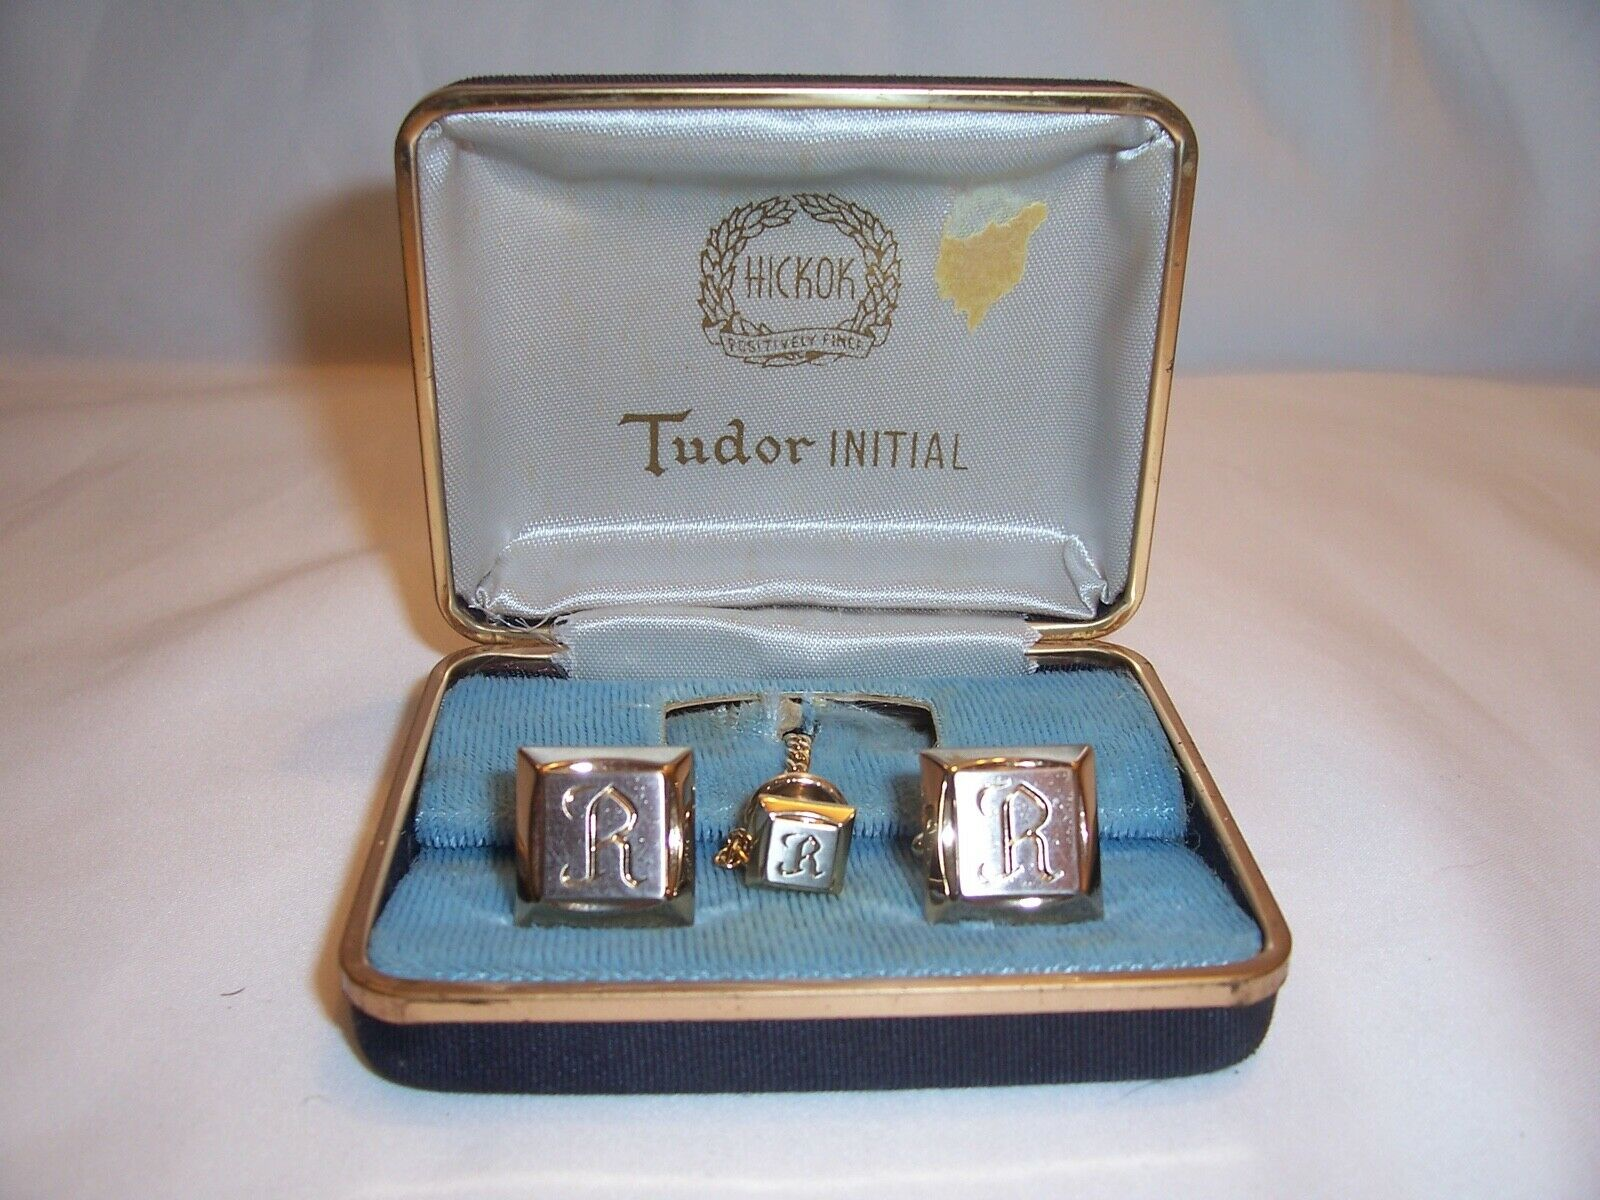 Vintage Tudor Initials R cuff links and tie tac Never worn